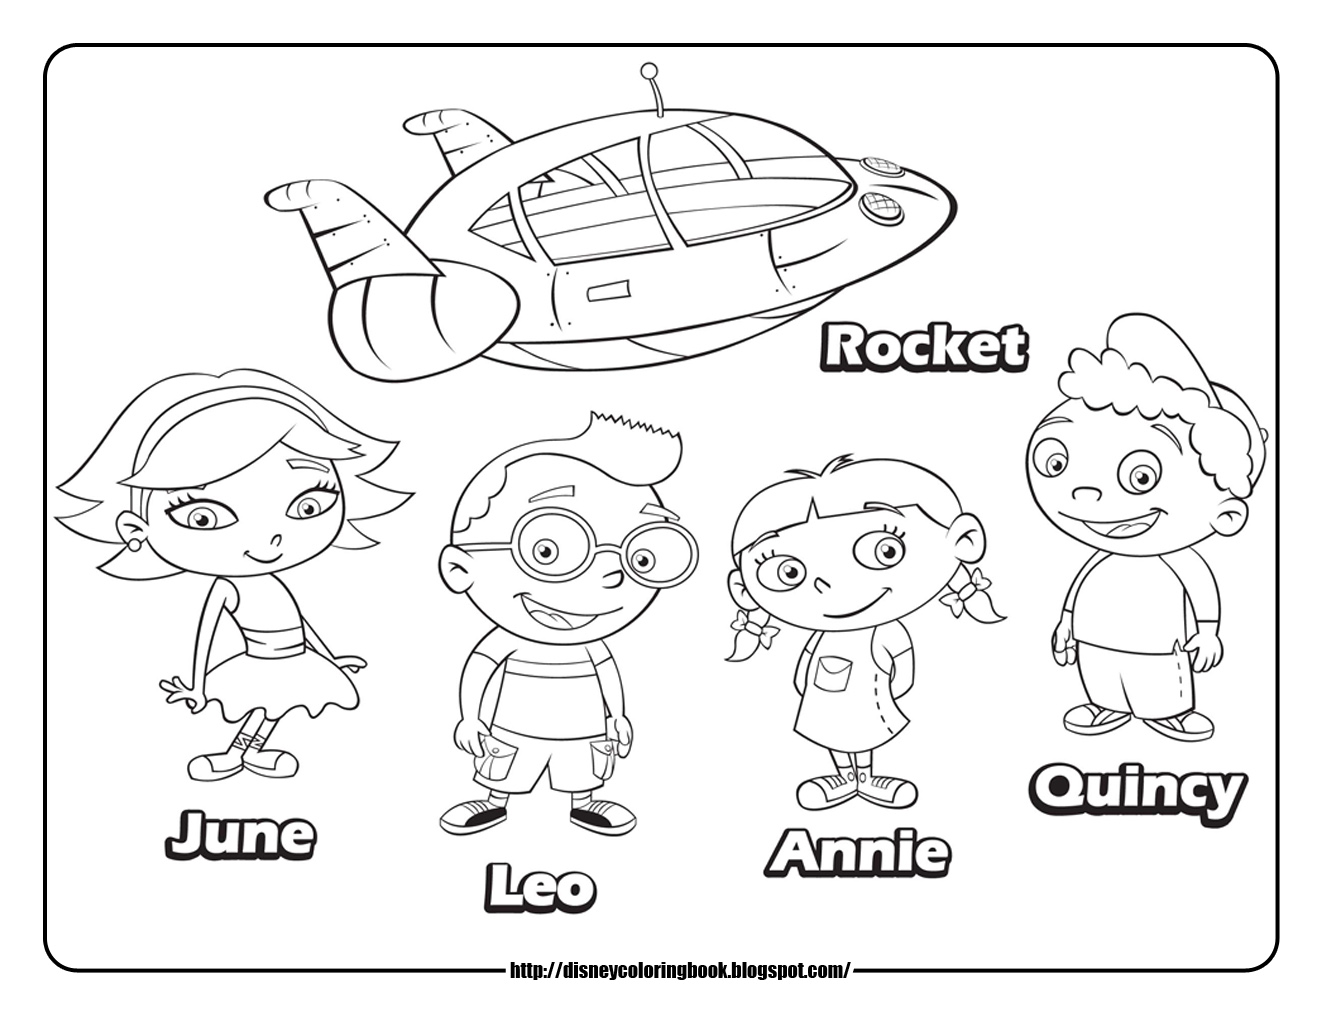 little einsteins online coloring pages - photo #4